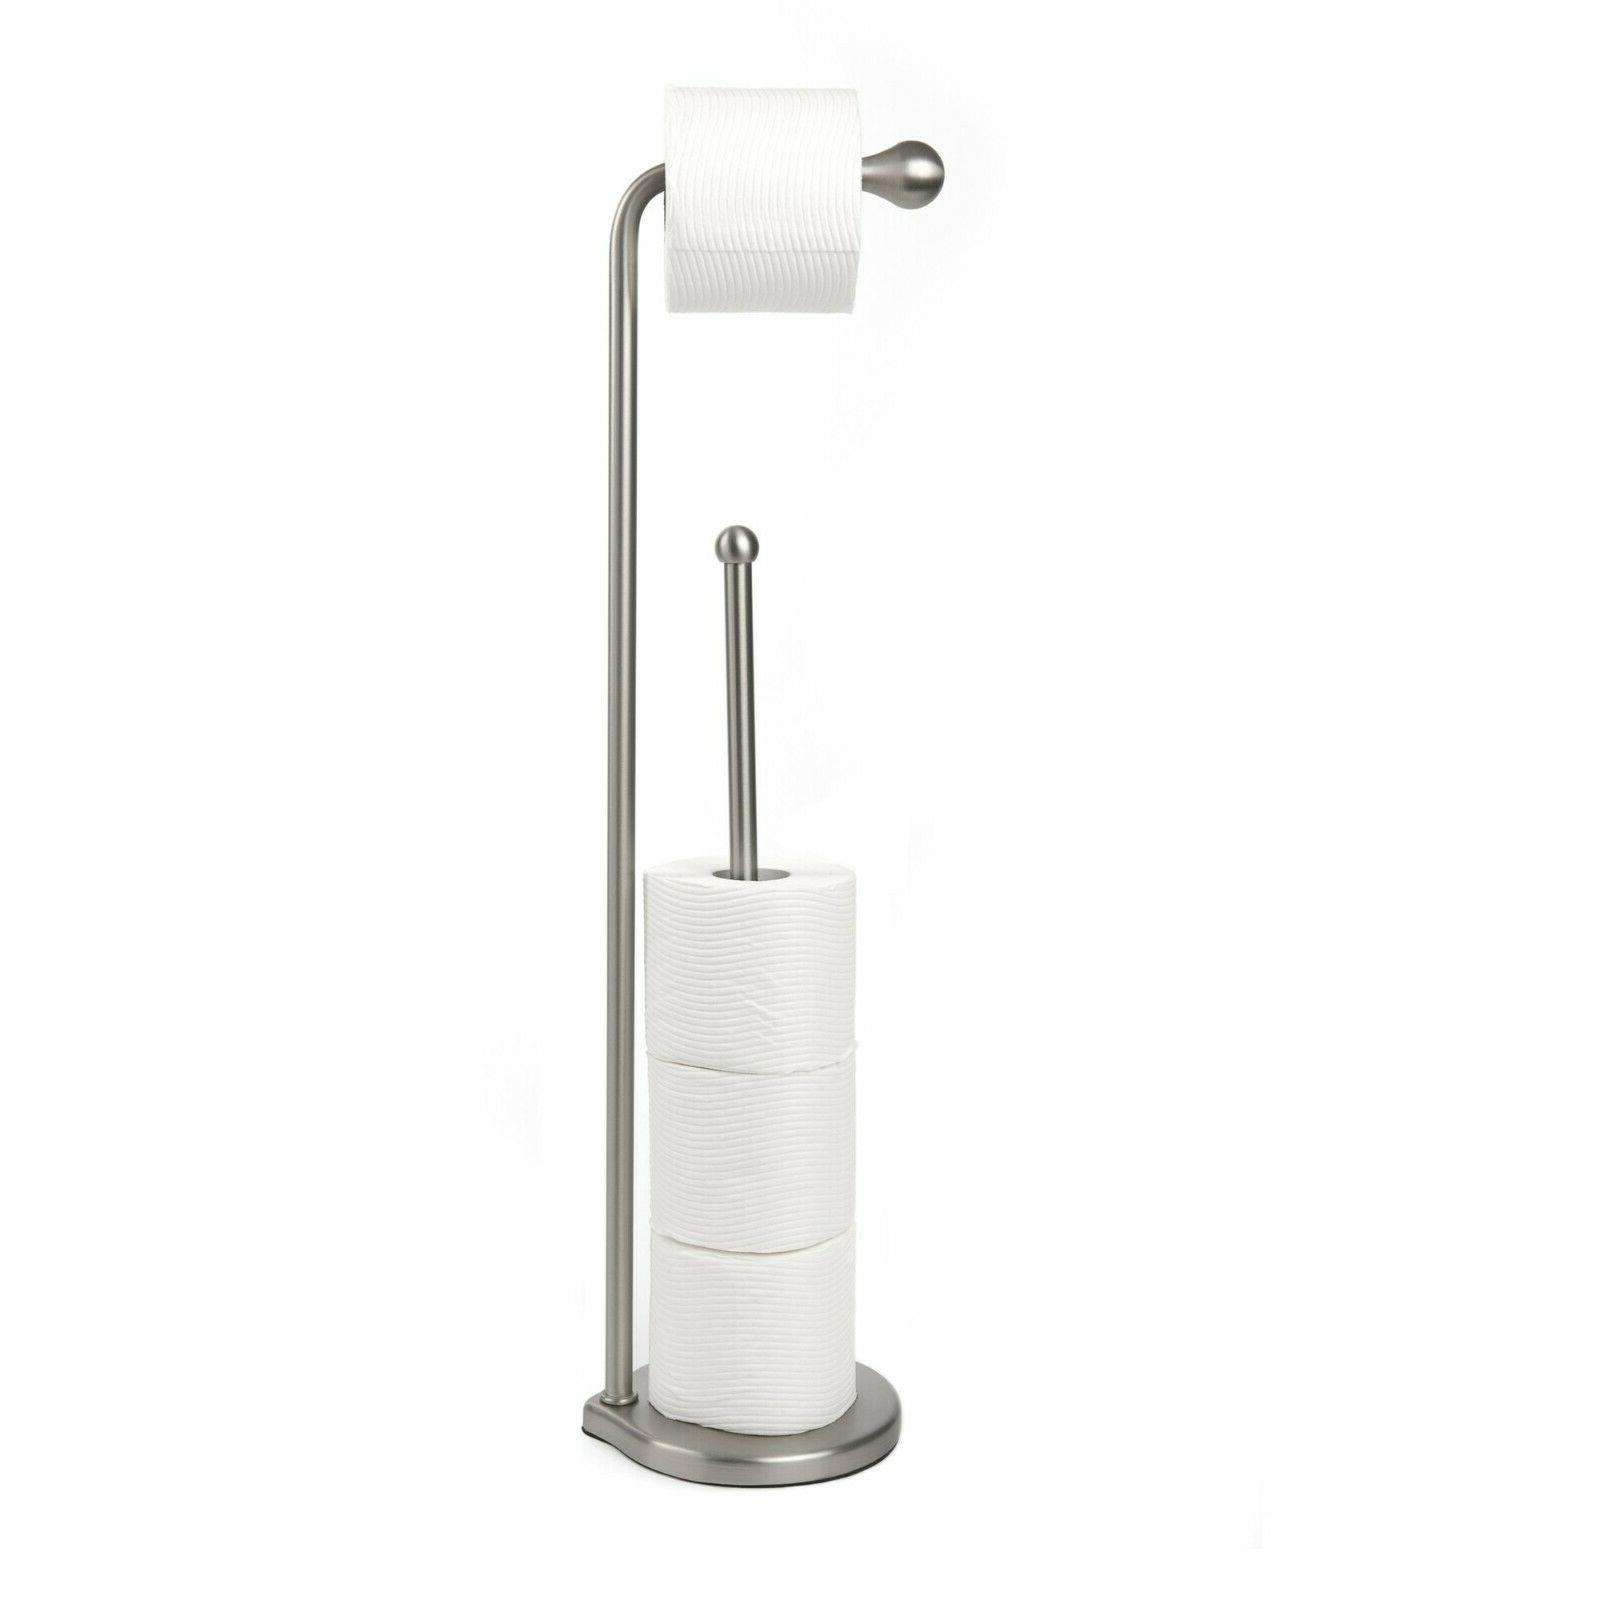 Umbra Teardrop Free Standing Toilet Paper Holder Stand with